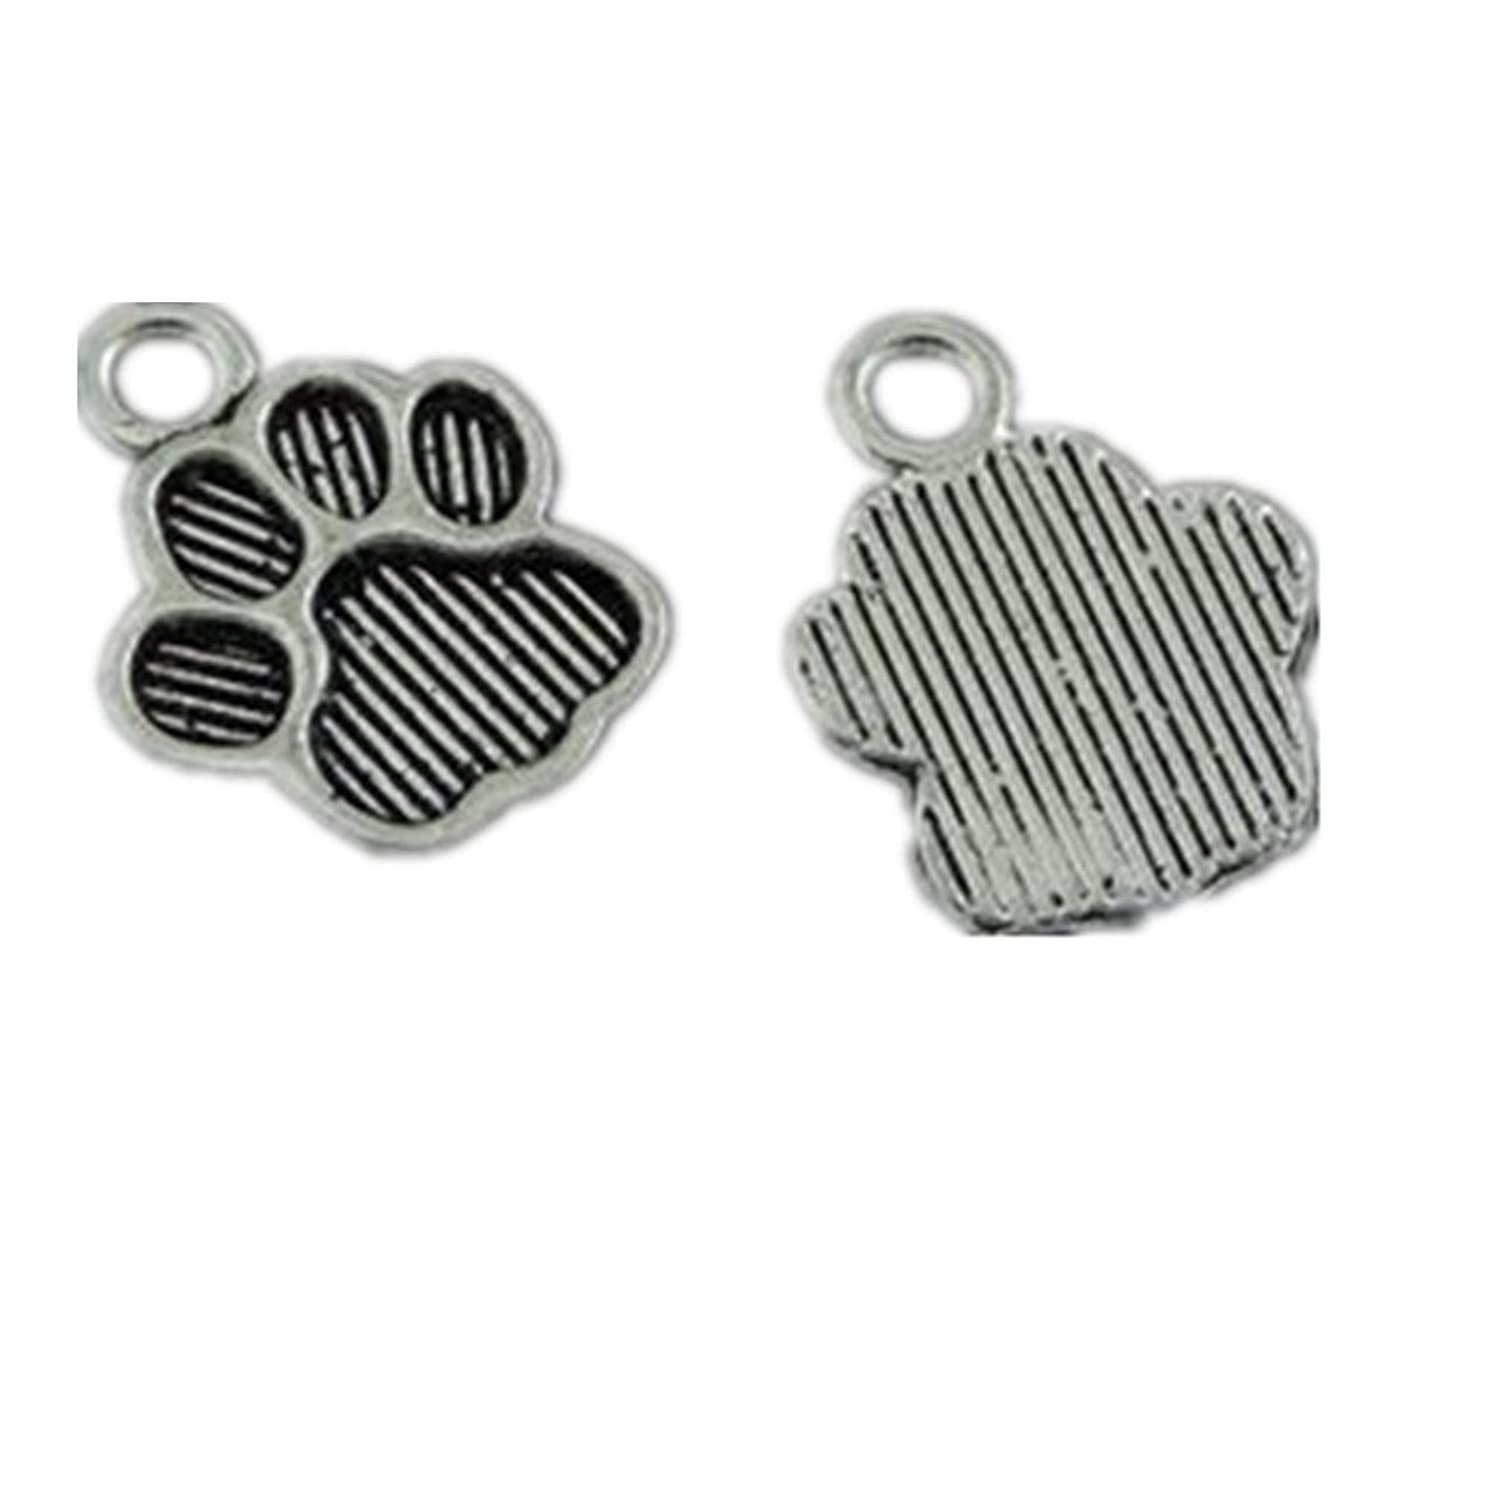 Julie Wang 100PCS Antiqued Silver Cat Paw Foot Prints Charms Pendants for Jewelry Making DIY 15x11MM